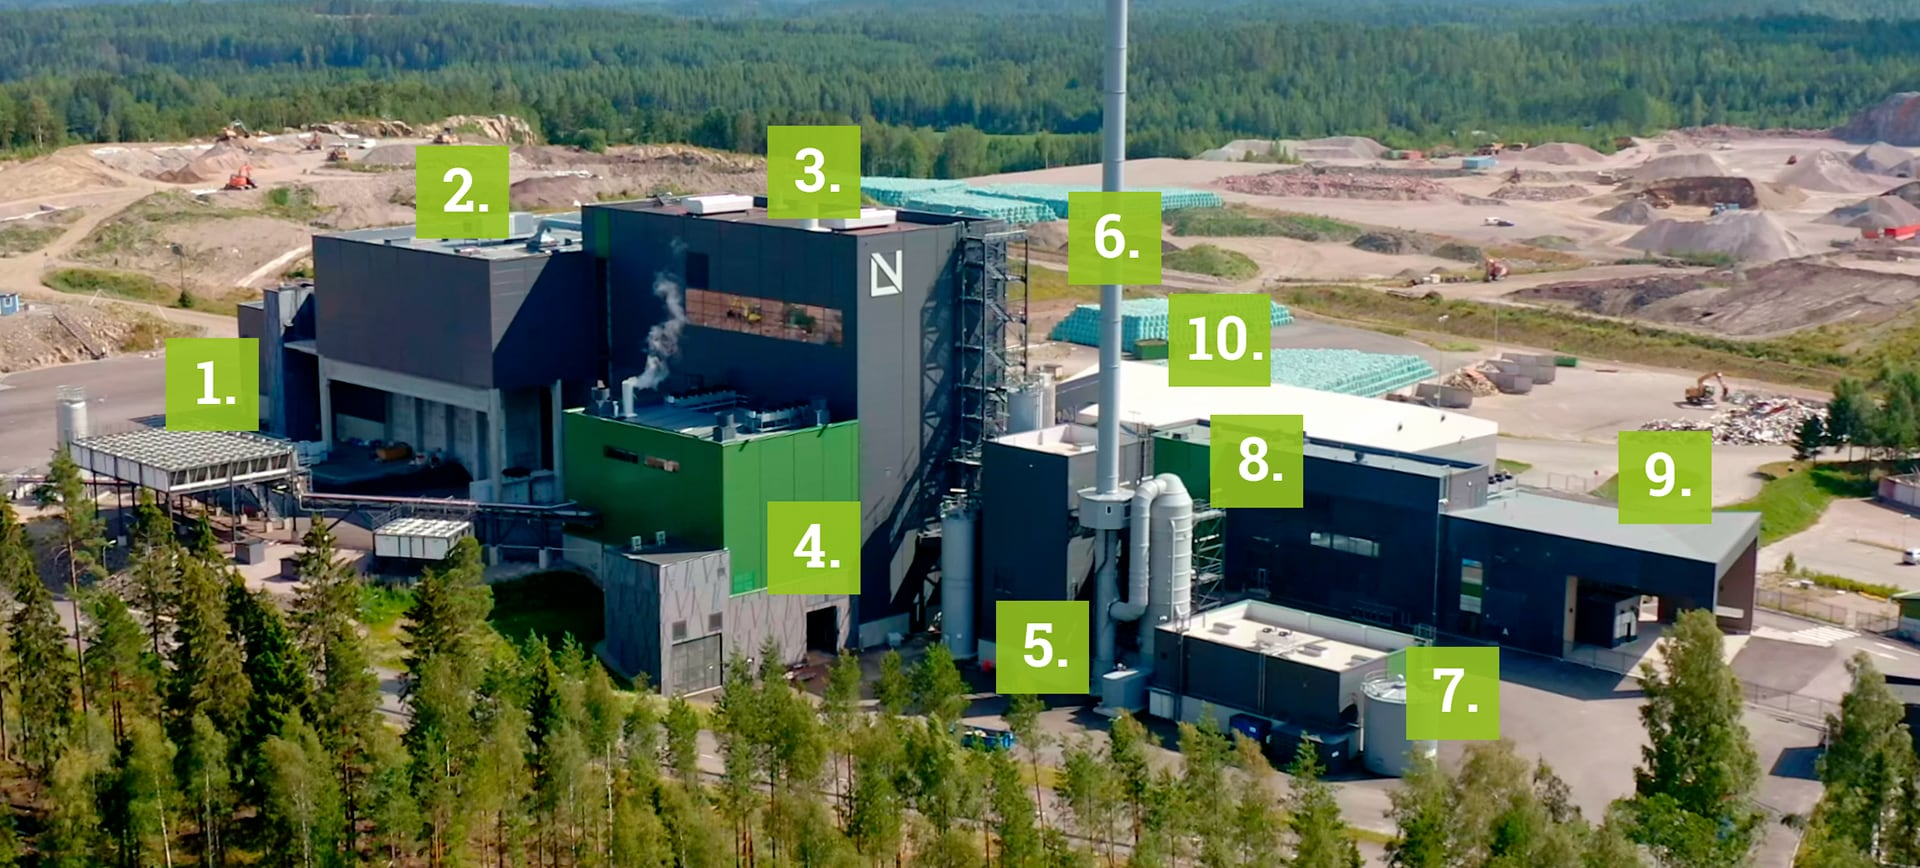 The plant has facilities for receiving waste fuel, a waste bunker, boiler and turbine buildings, a flue gas treatment plant, a water plant, a control room, an intermediate slag storage facility, a visitor center and an office.